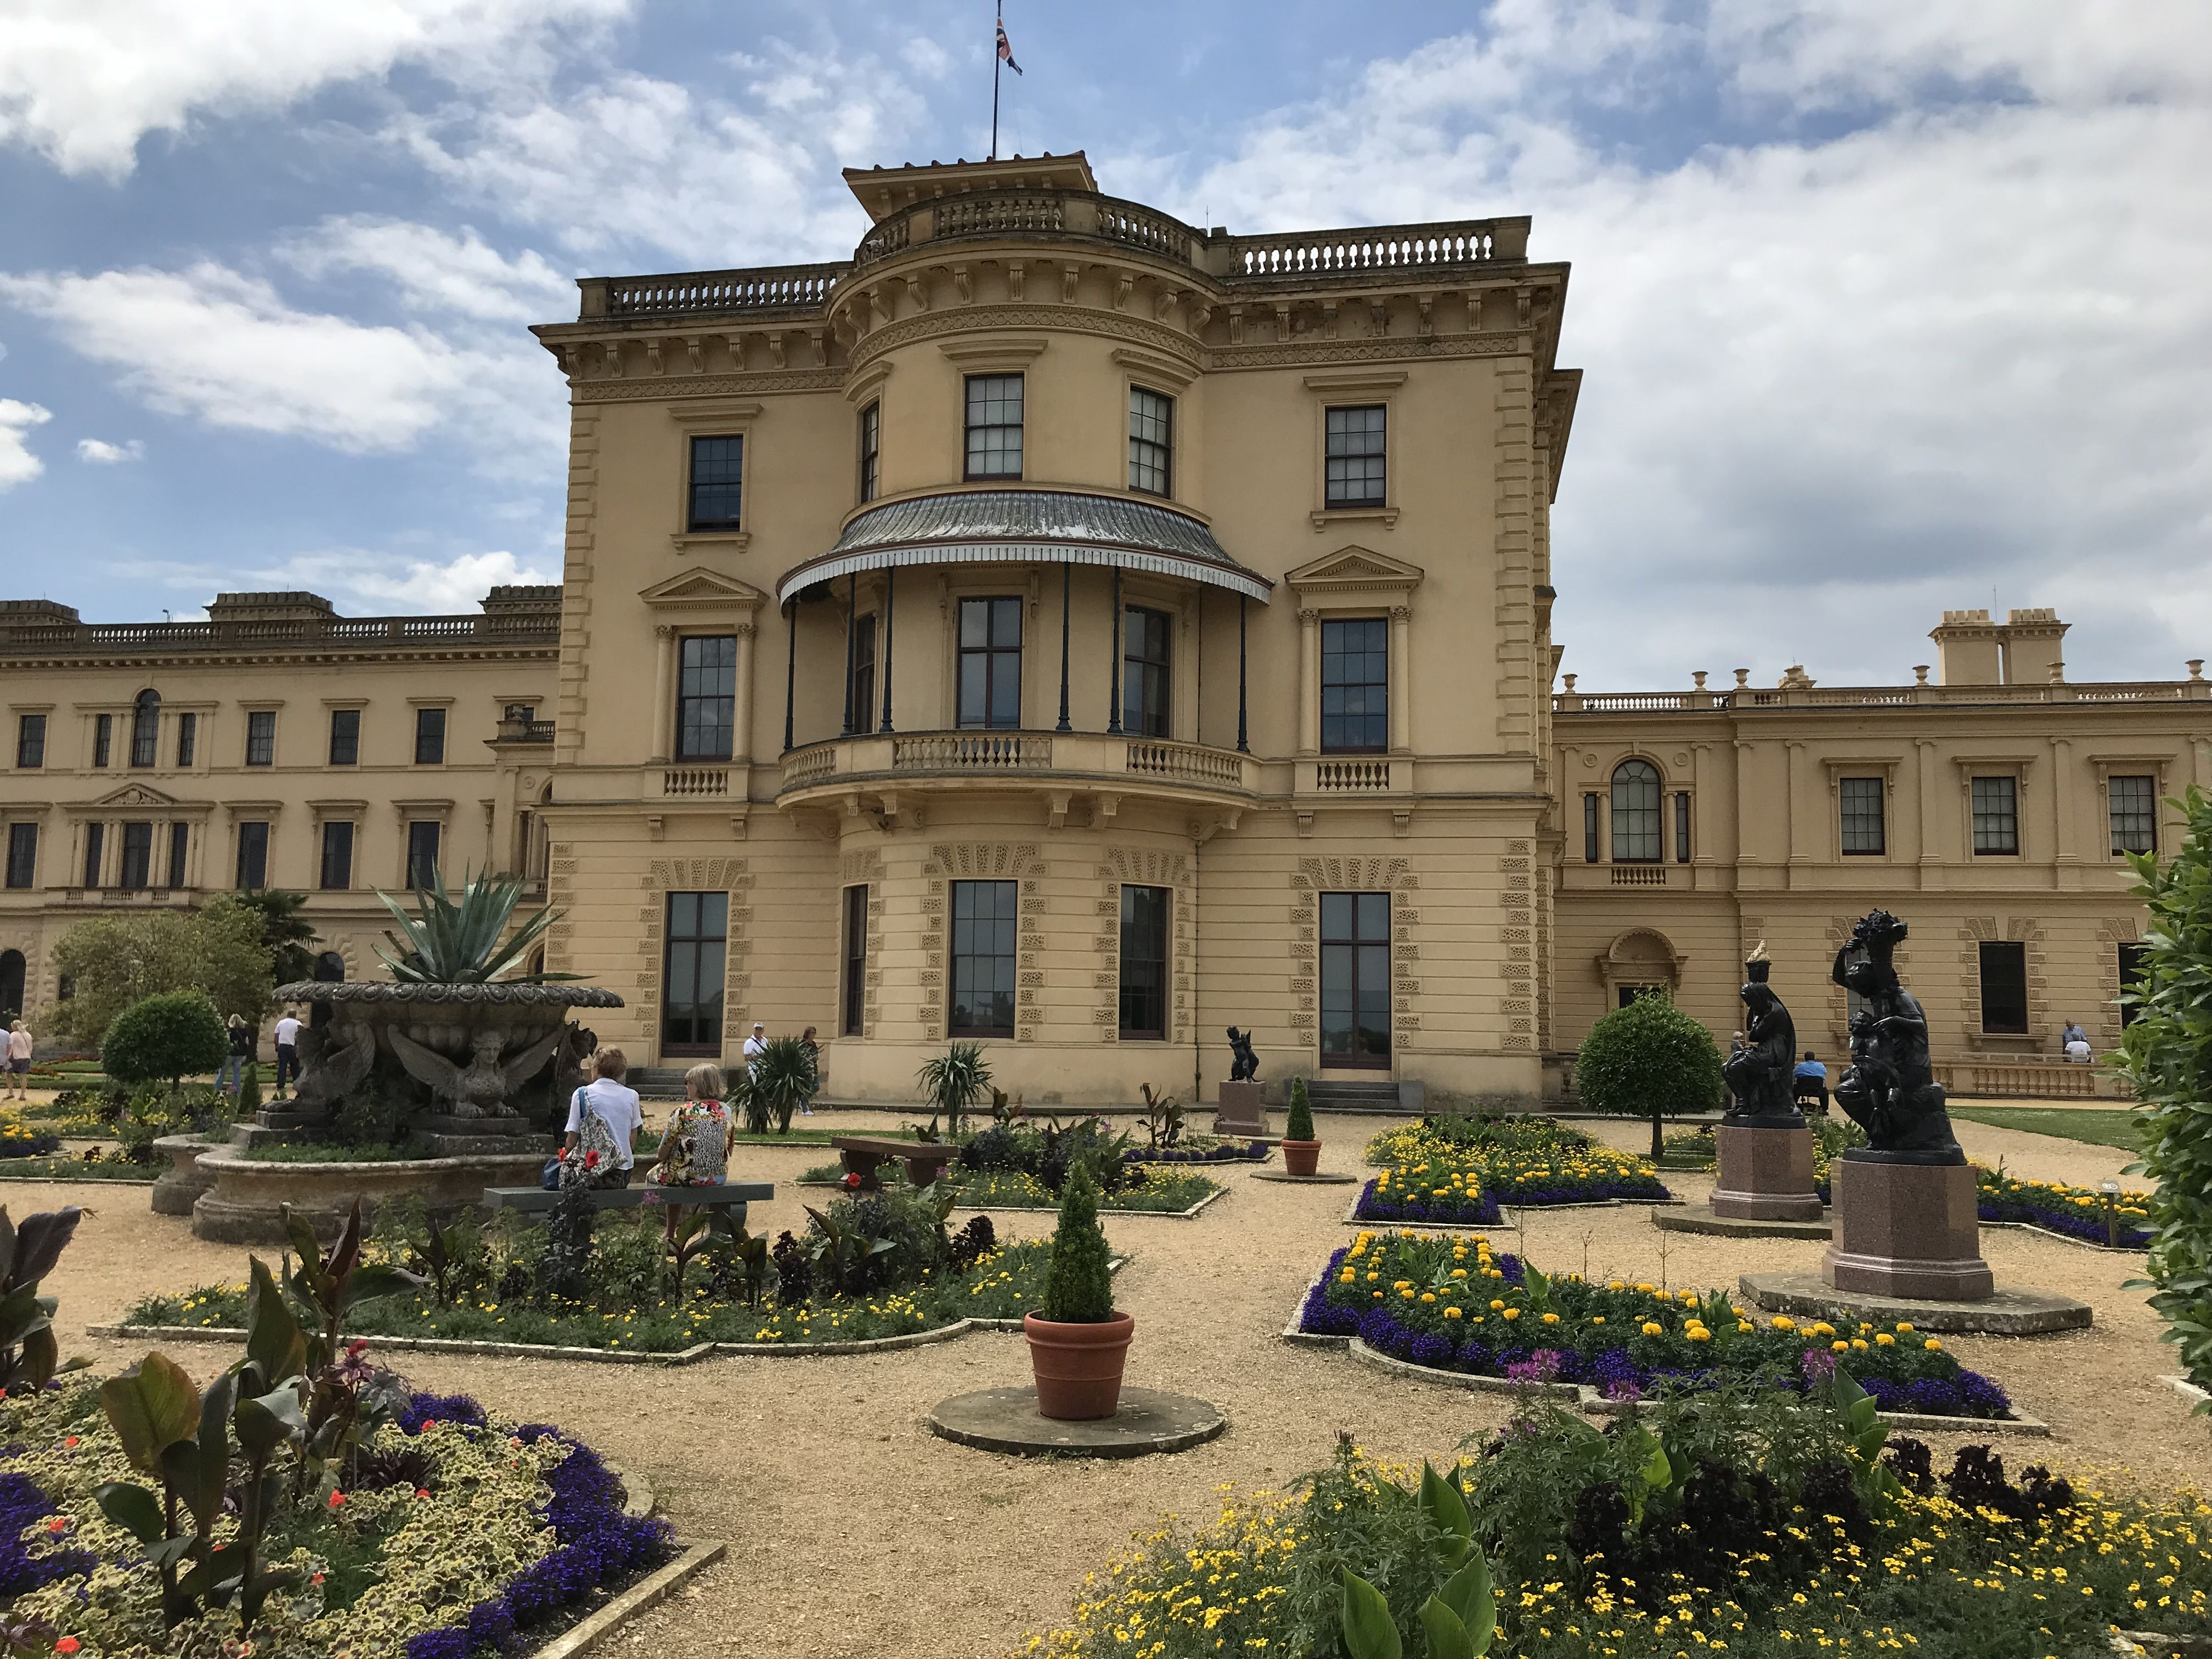 Choices A recent visit to the beautiful Osborne House sparked thoughts around the power of being given a choice when you have a disability. Read the latest post in my blog where I explain my thoughts... link in my bio.